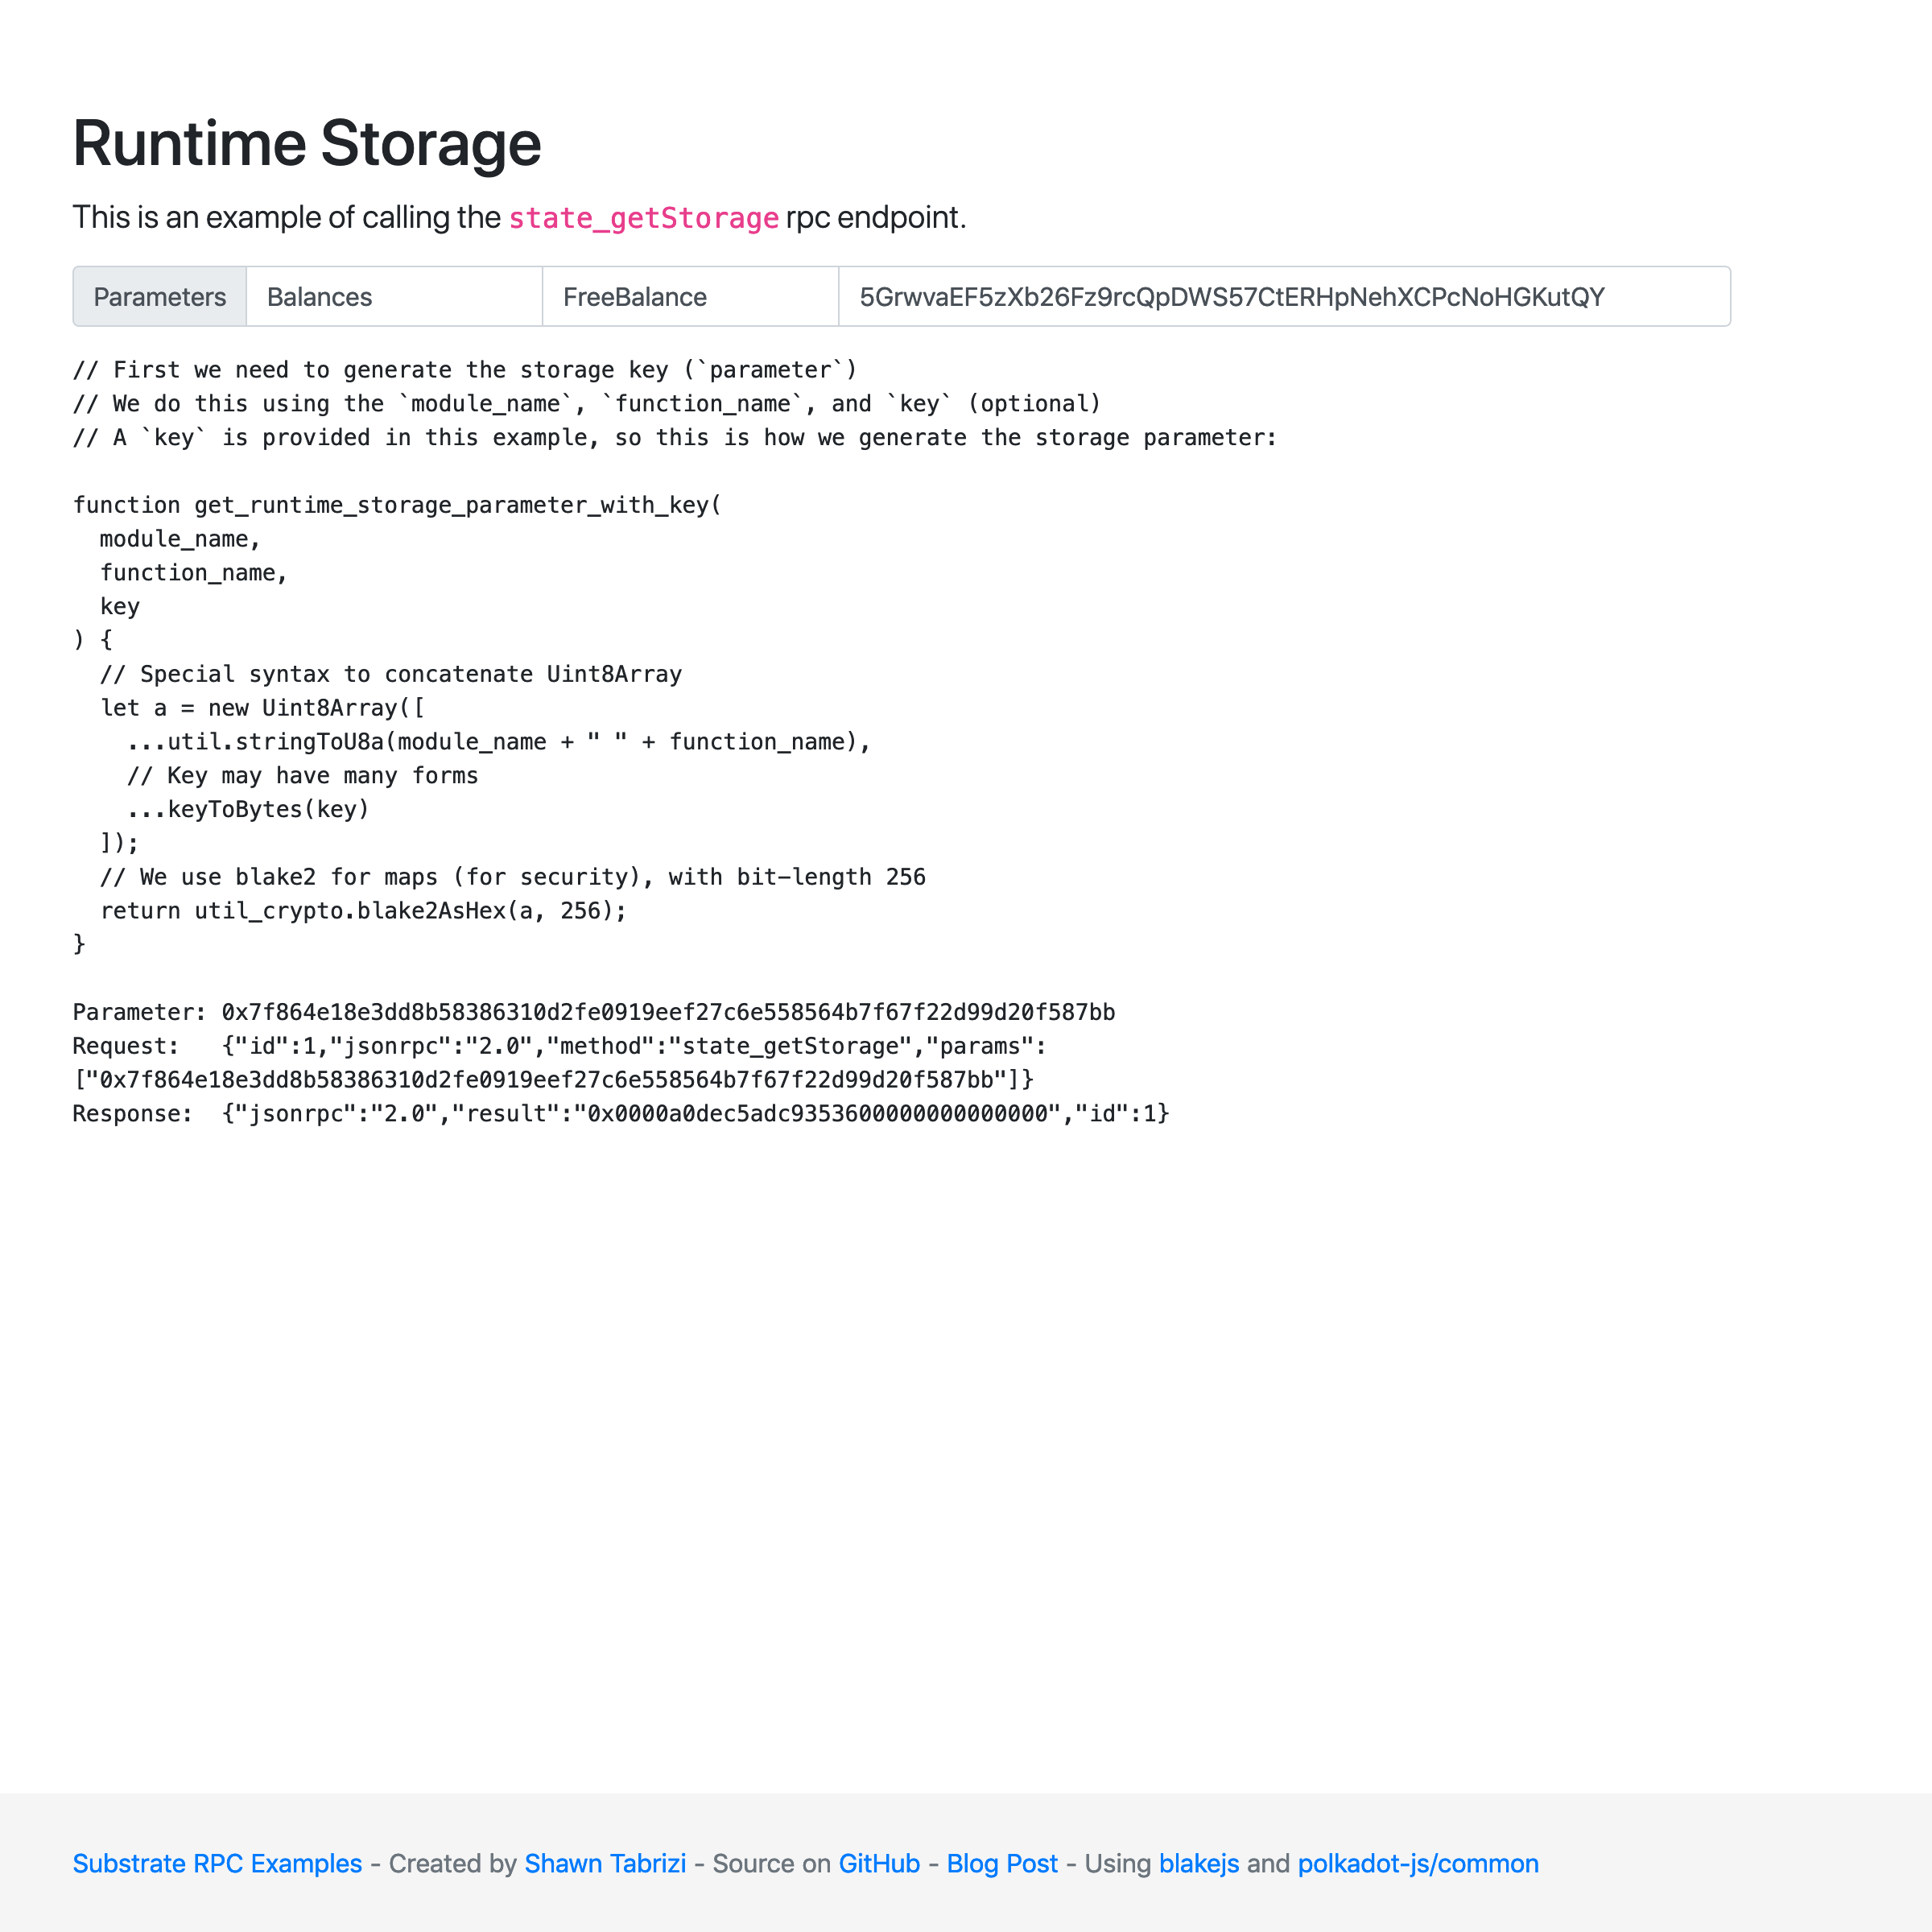 substrate-rpc-examples Screenshot